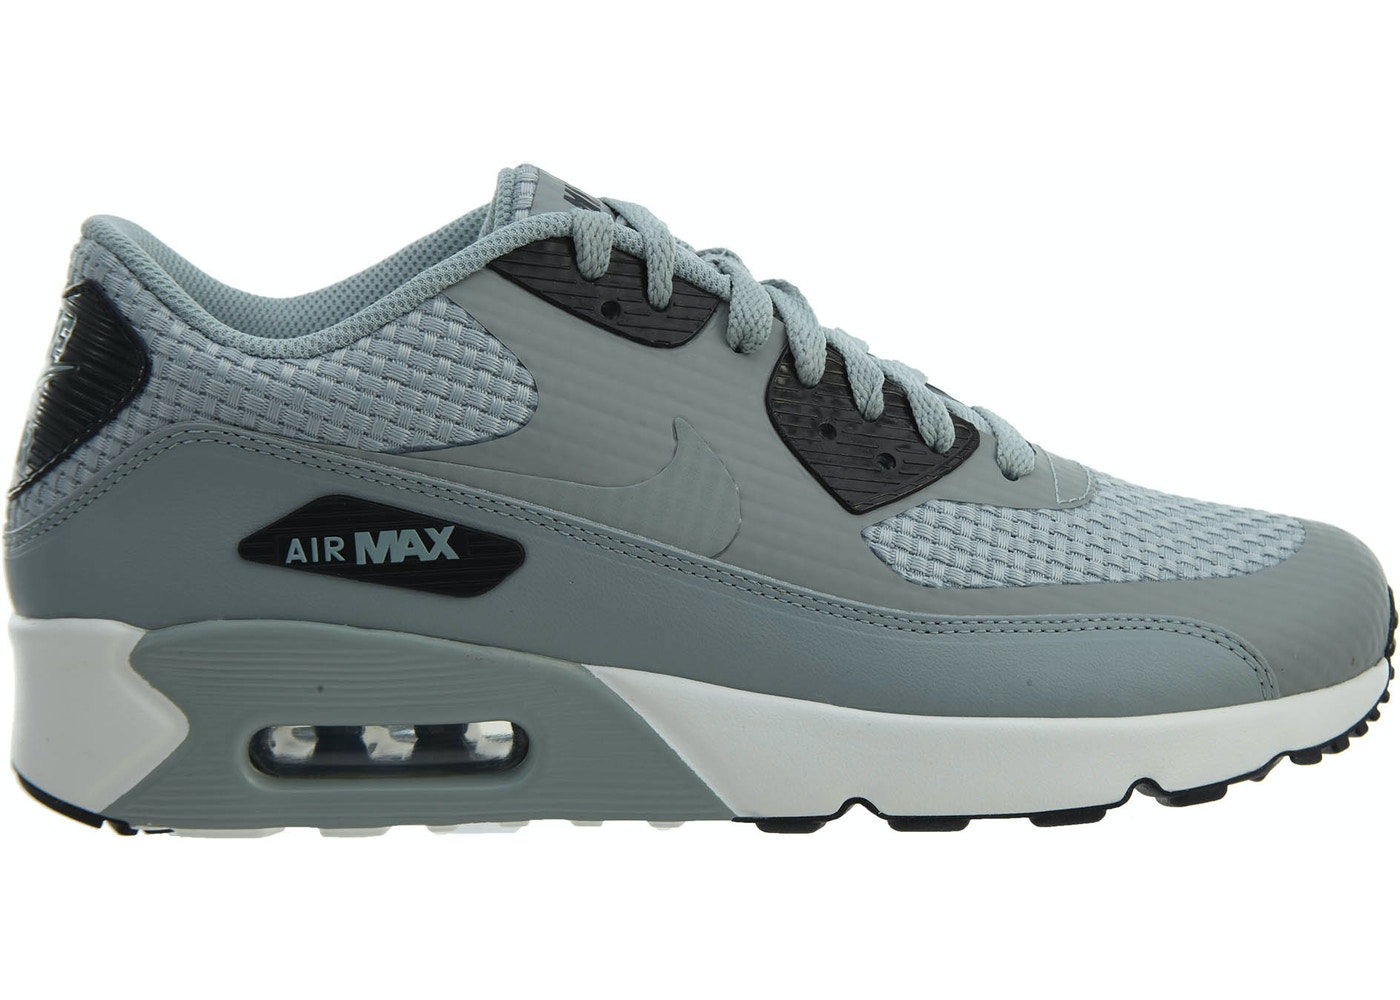 27d6d566cd Sell. or Ask. Size: 9.5. View All Bids. Air Max 90 Ultra 2.0 Se ...